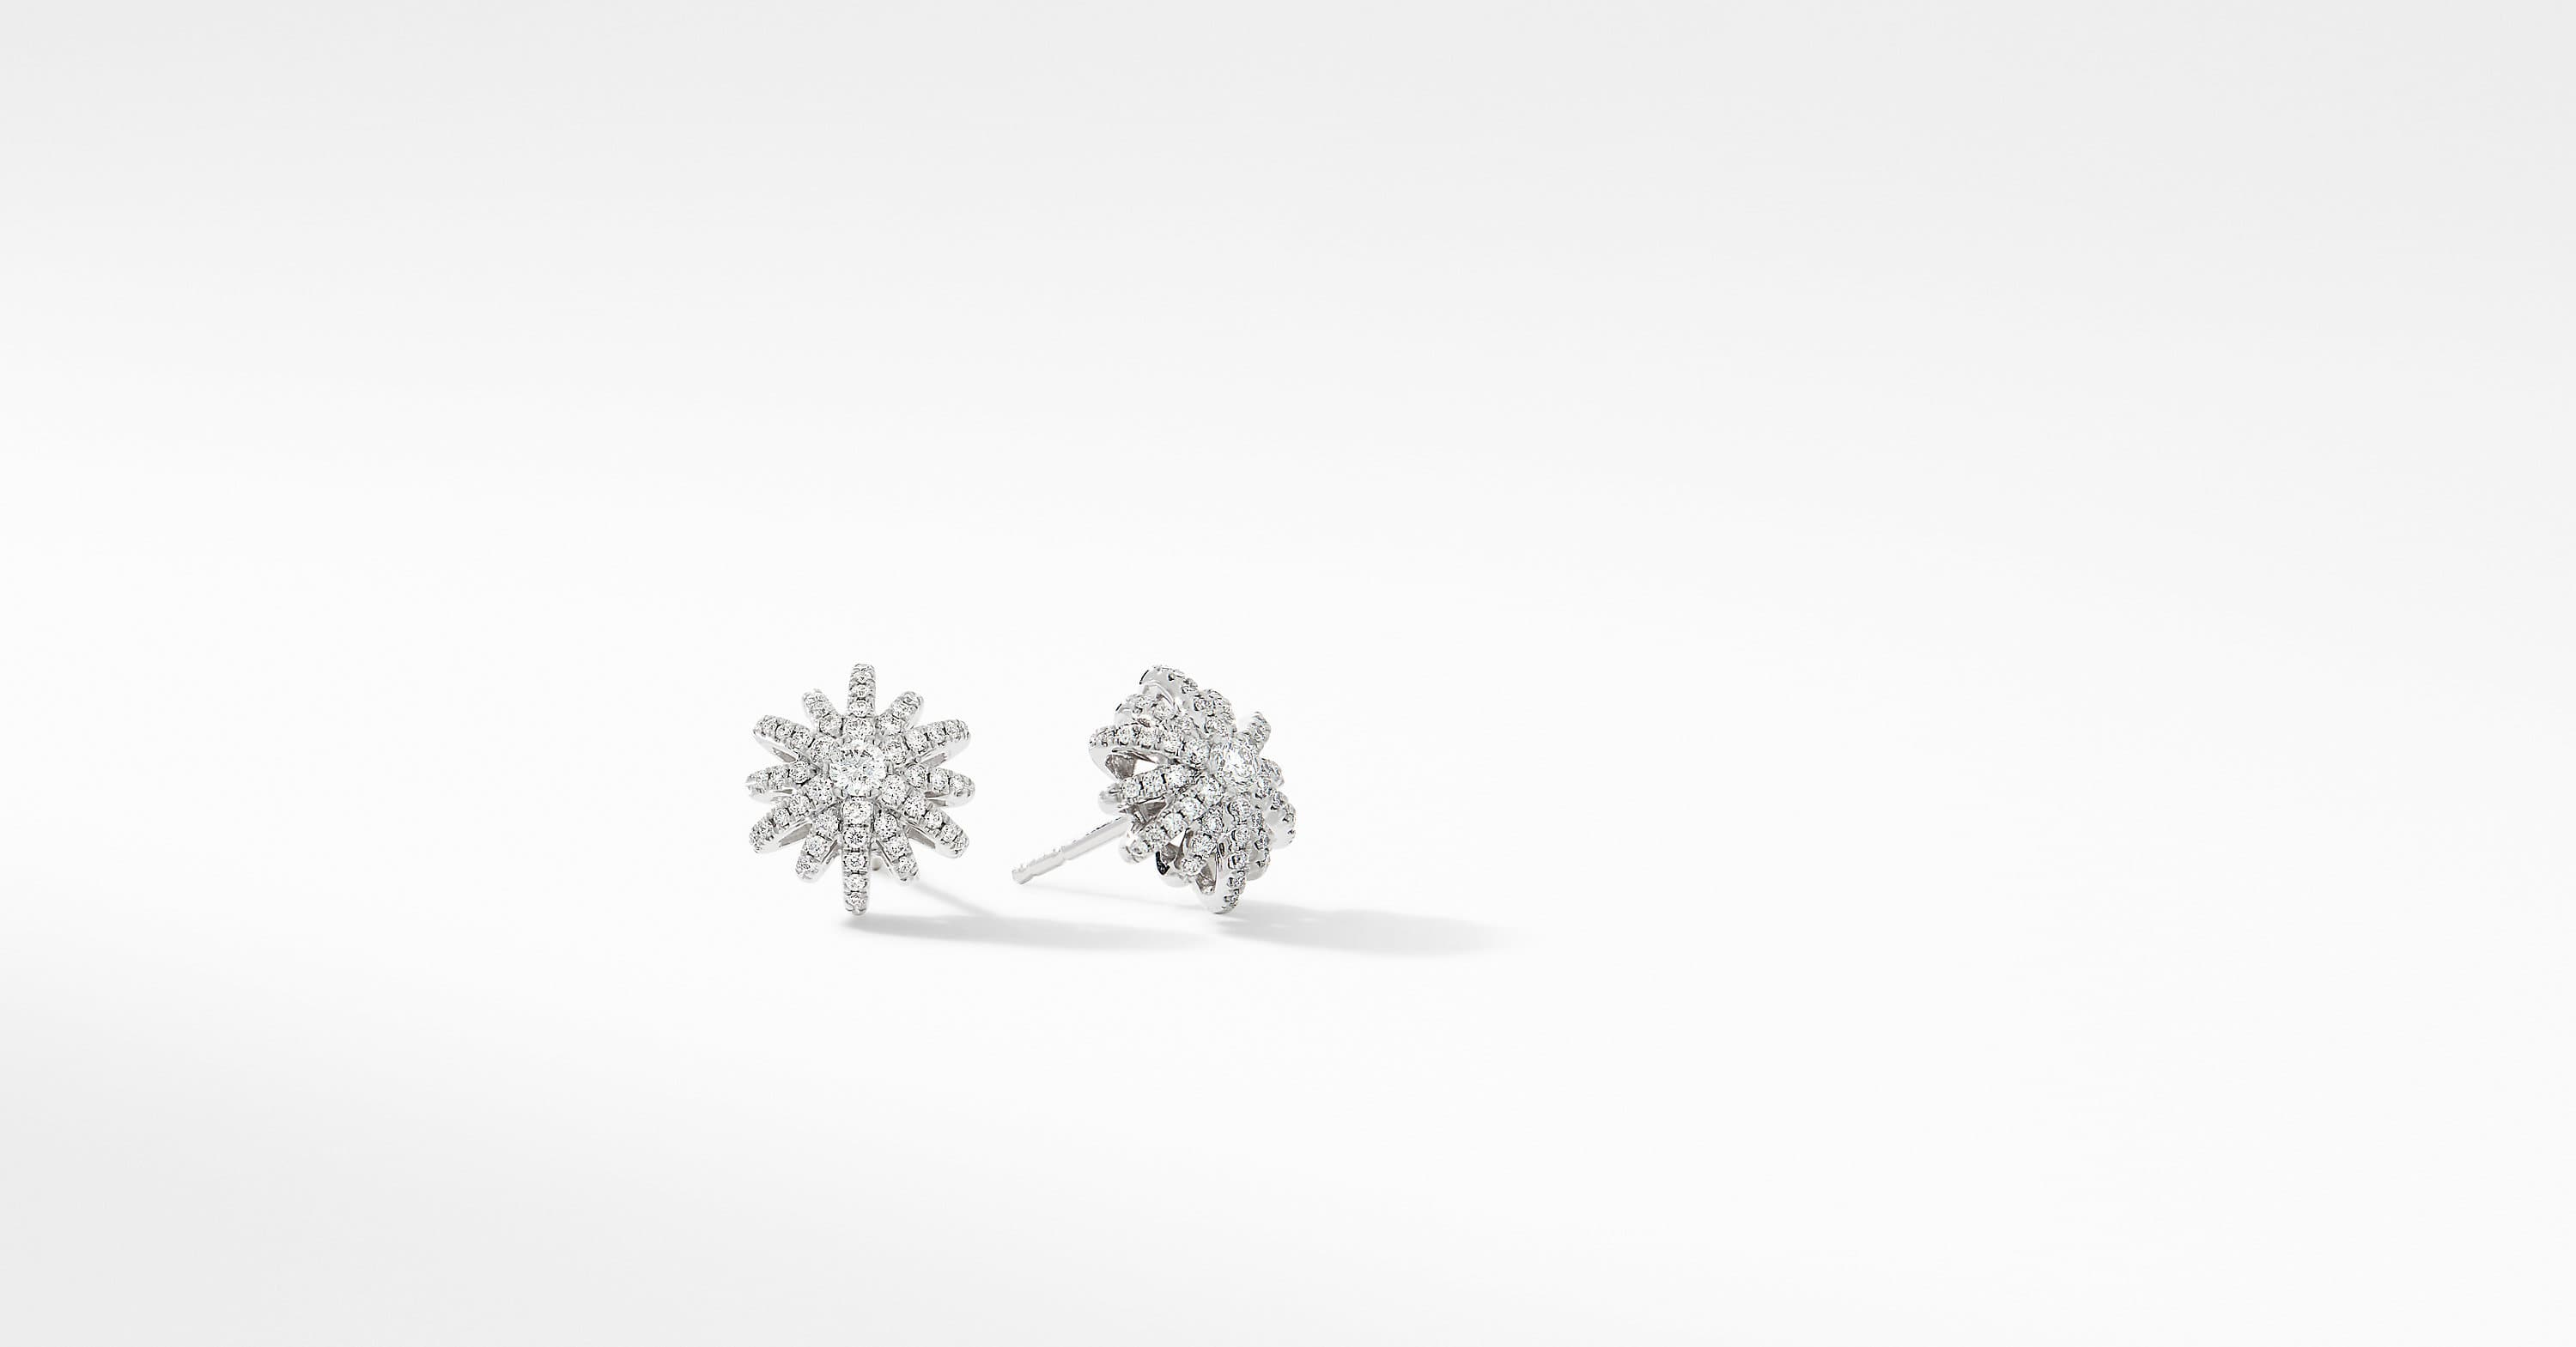 Starburst Small Stud Earrings in 18K White Gold with Pavé